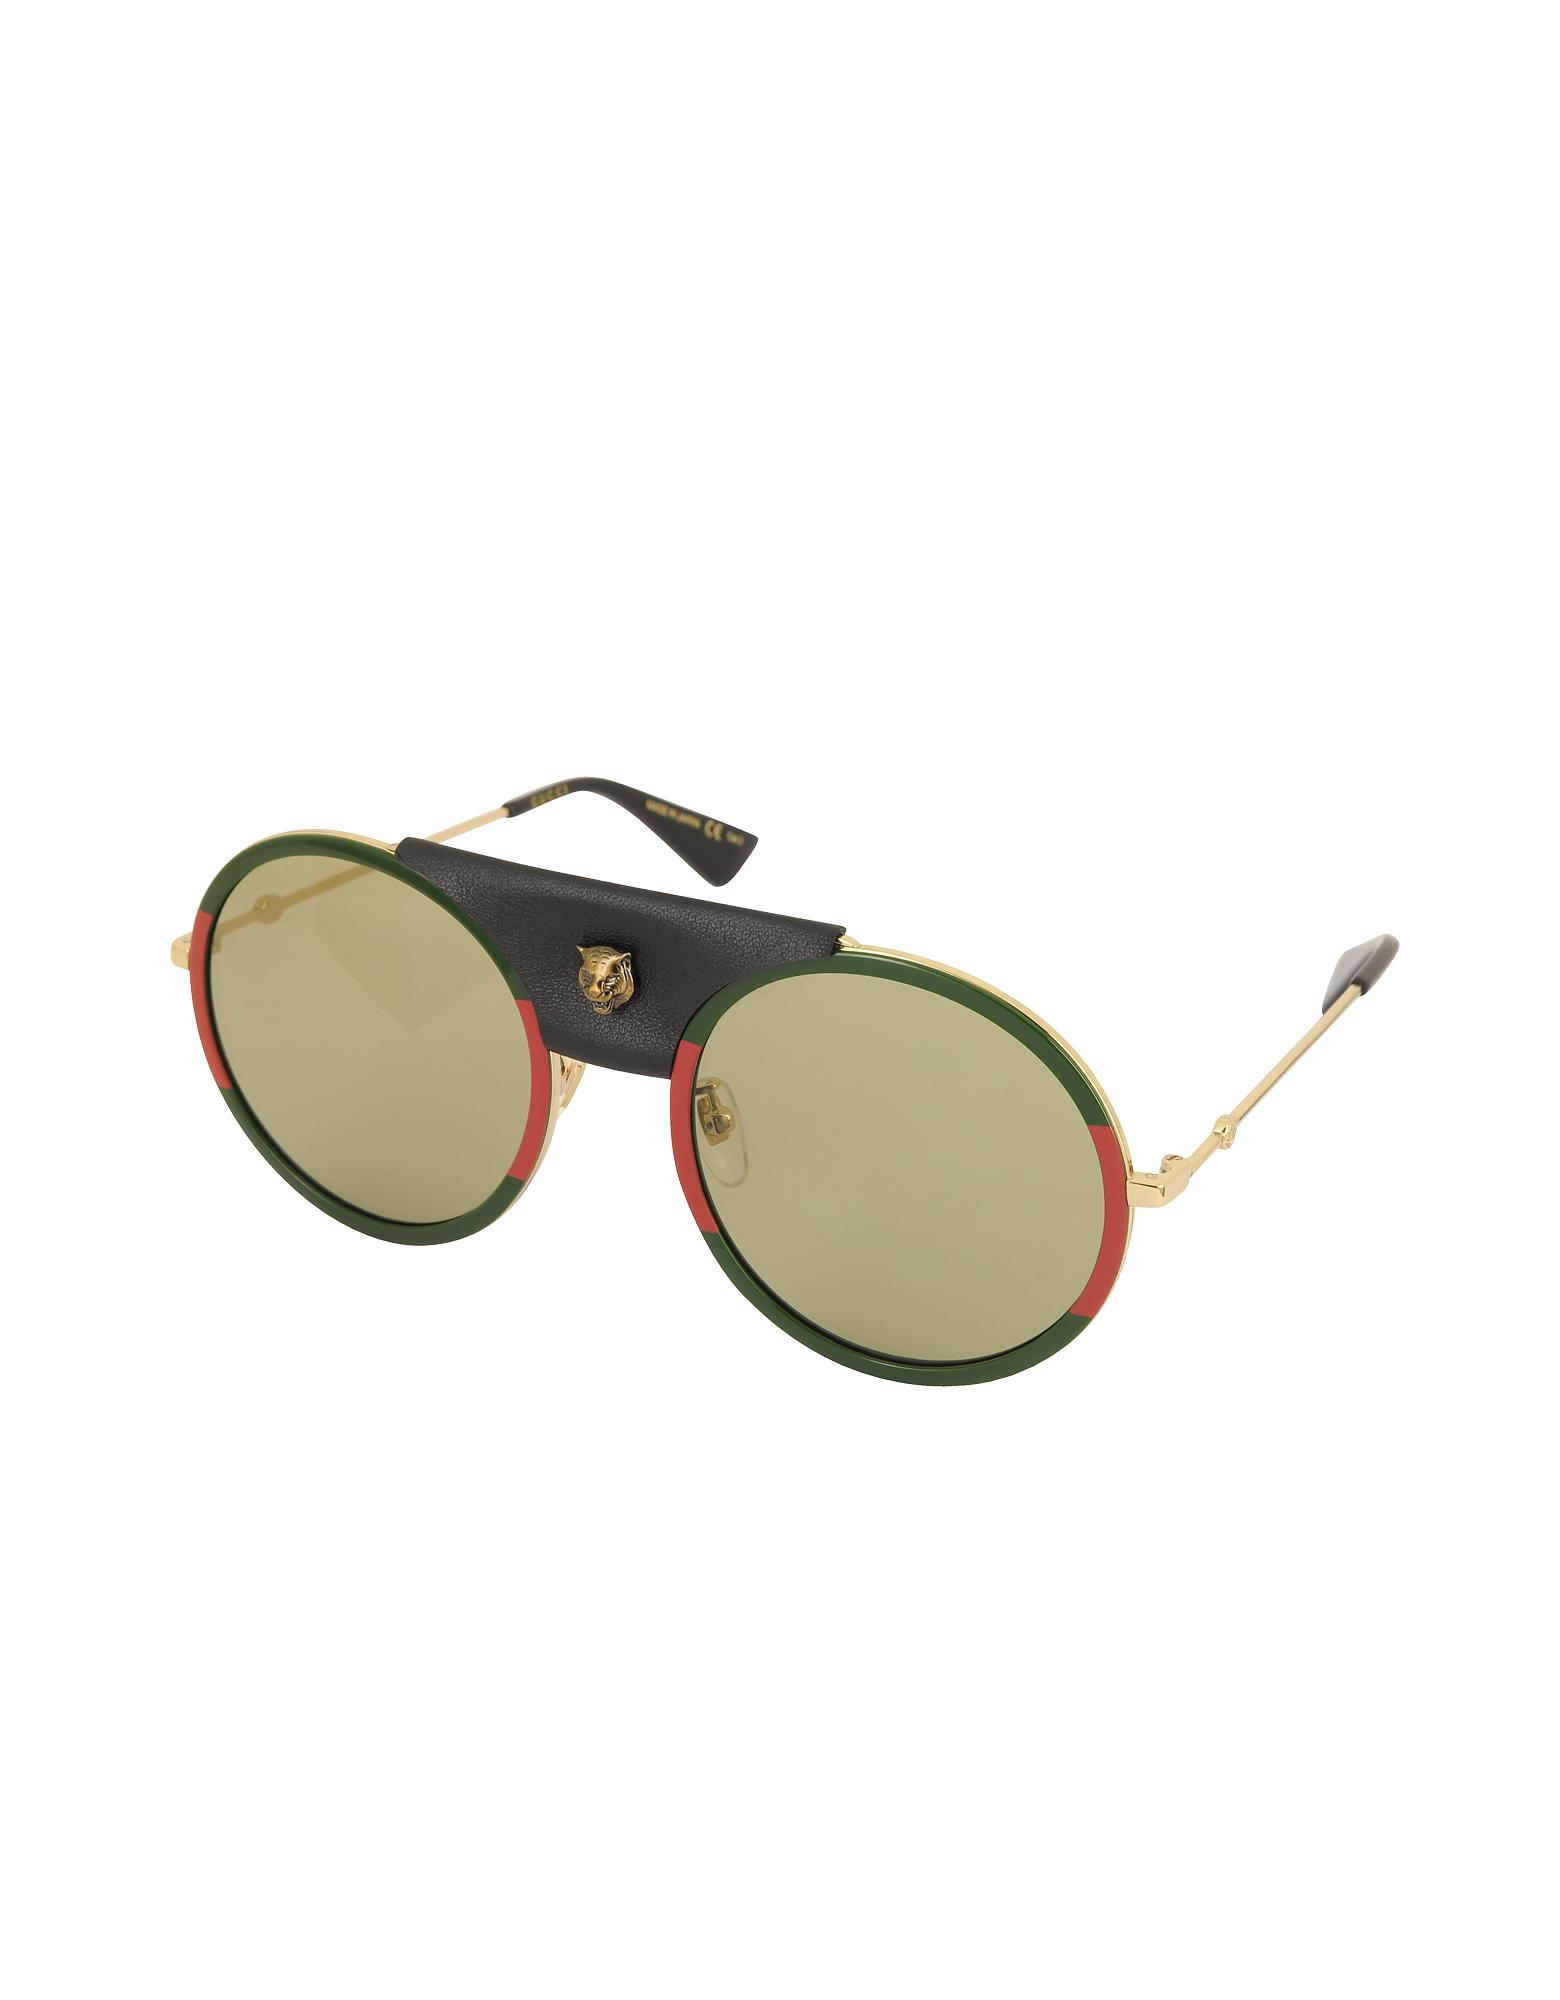 f96187cbe80 Lyst - Gucci GG0061S Round-frame Gold Metal And Black Leather ...